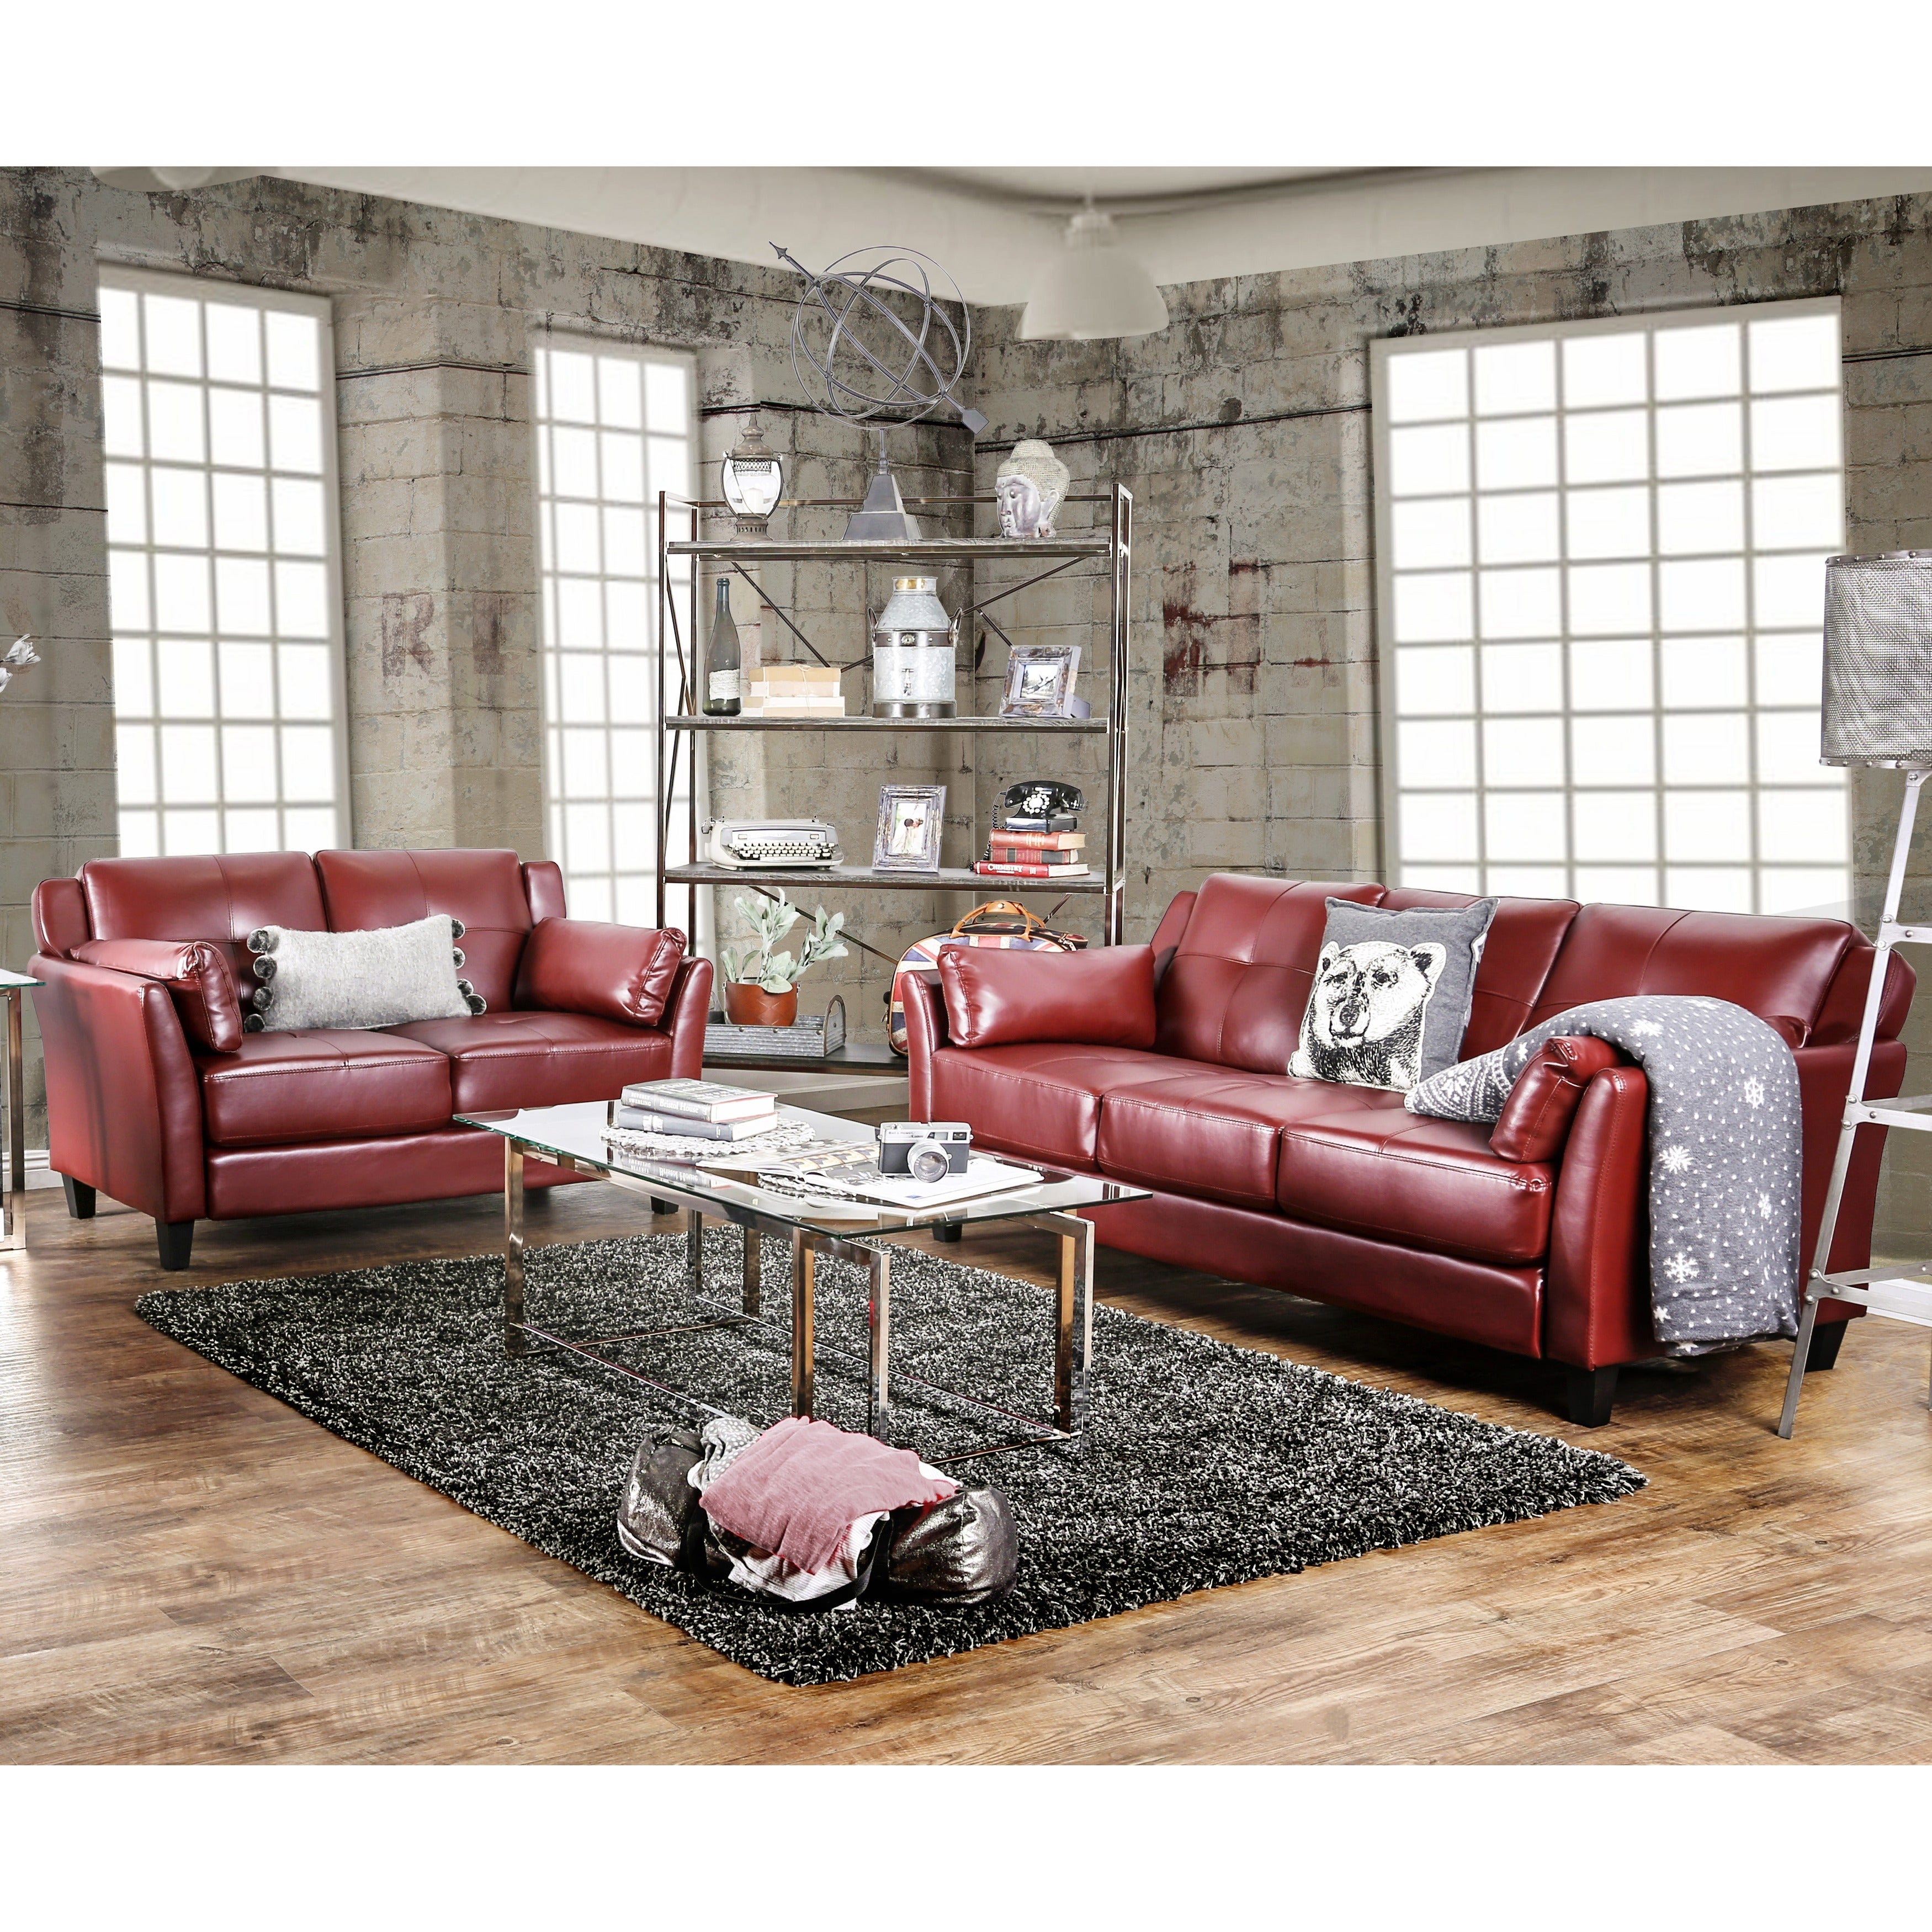 Shop Furniture Of America Pierson 2 Piece Double Stitched